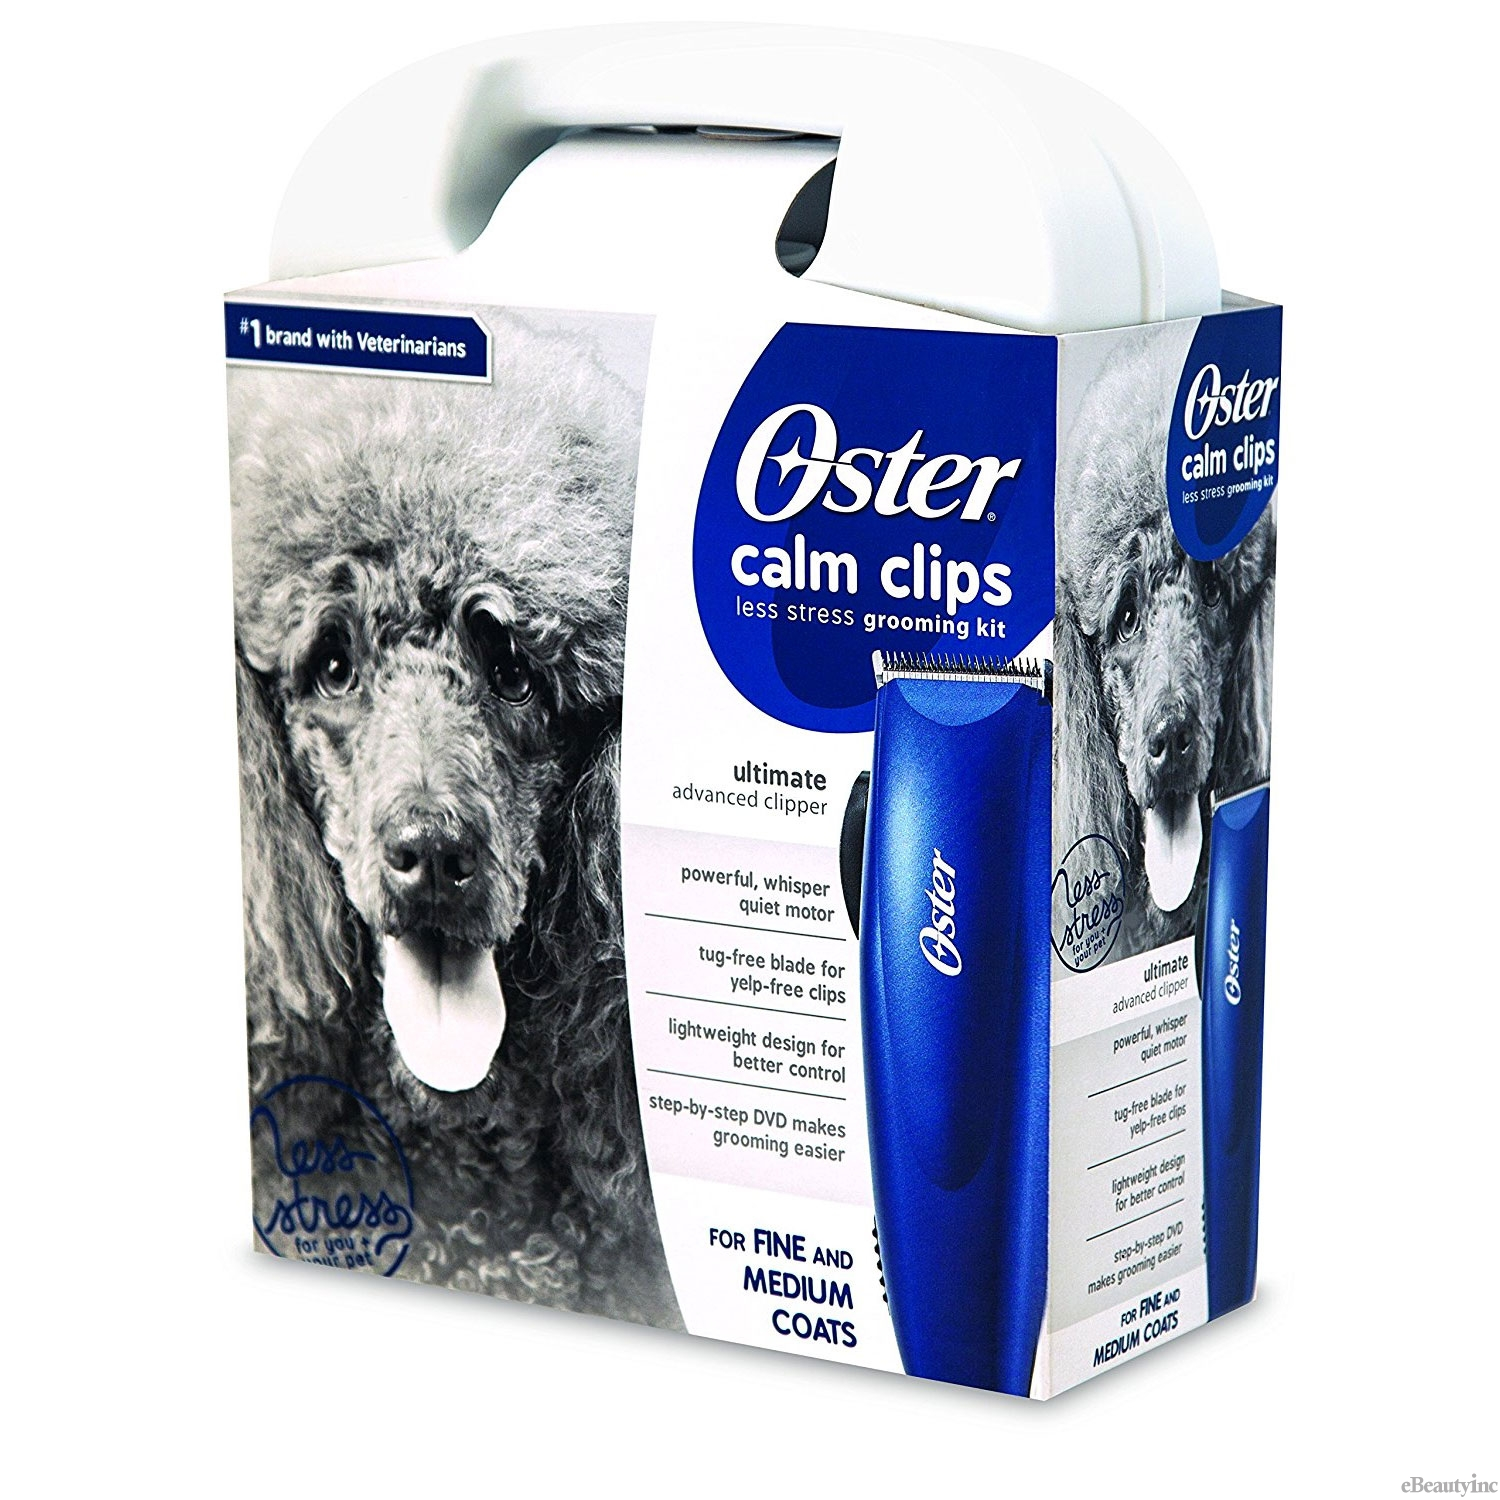 Image of Oster Calm Clips Ultimate Advanced Clipper Grooming Kit